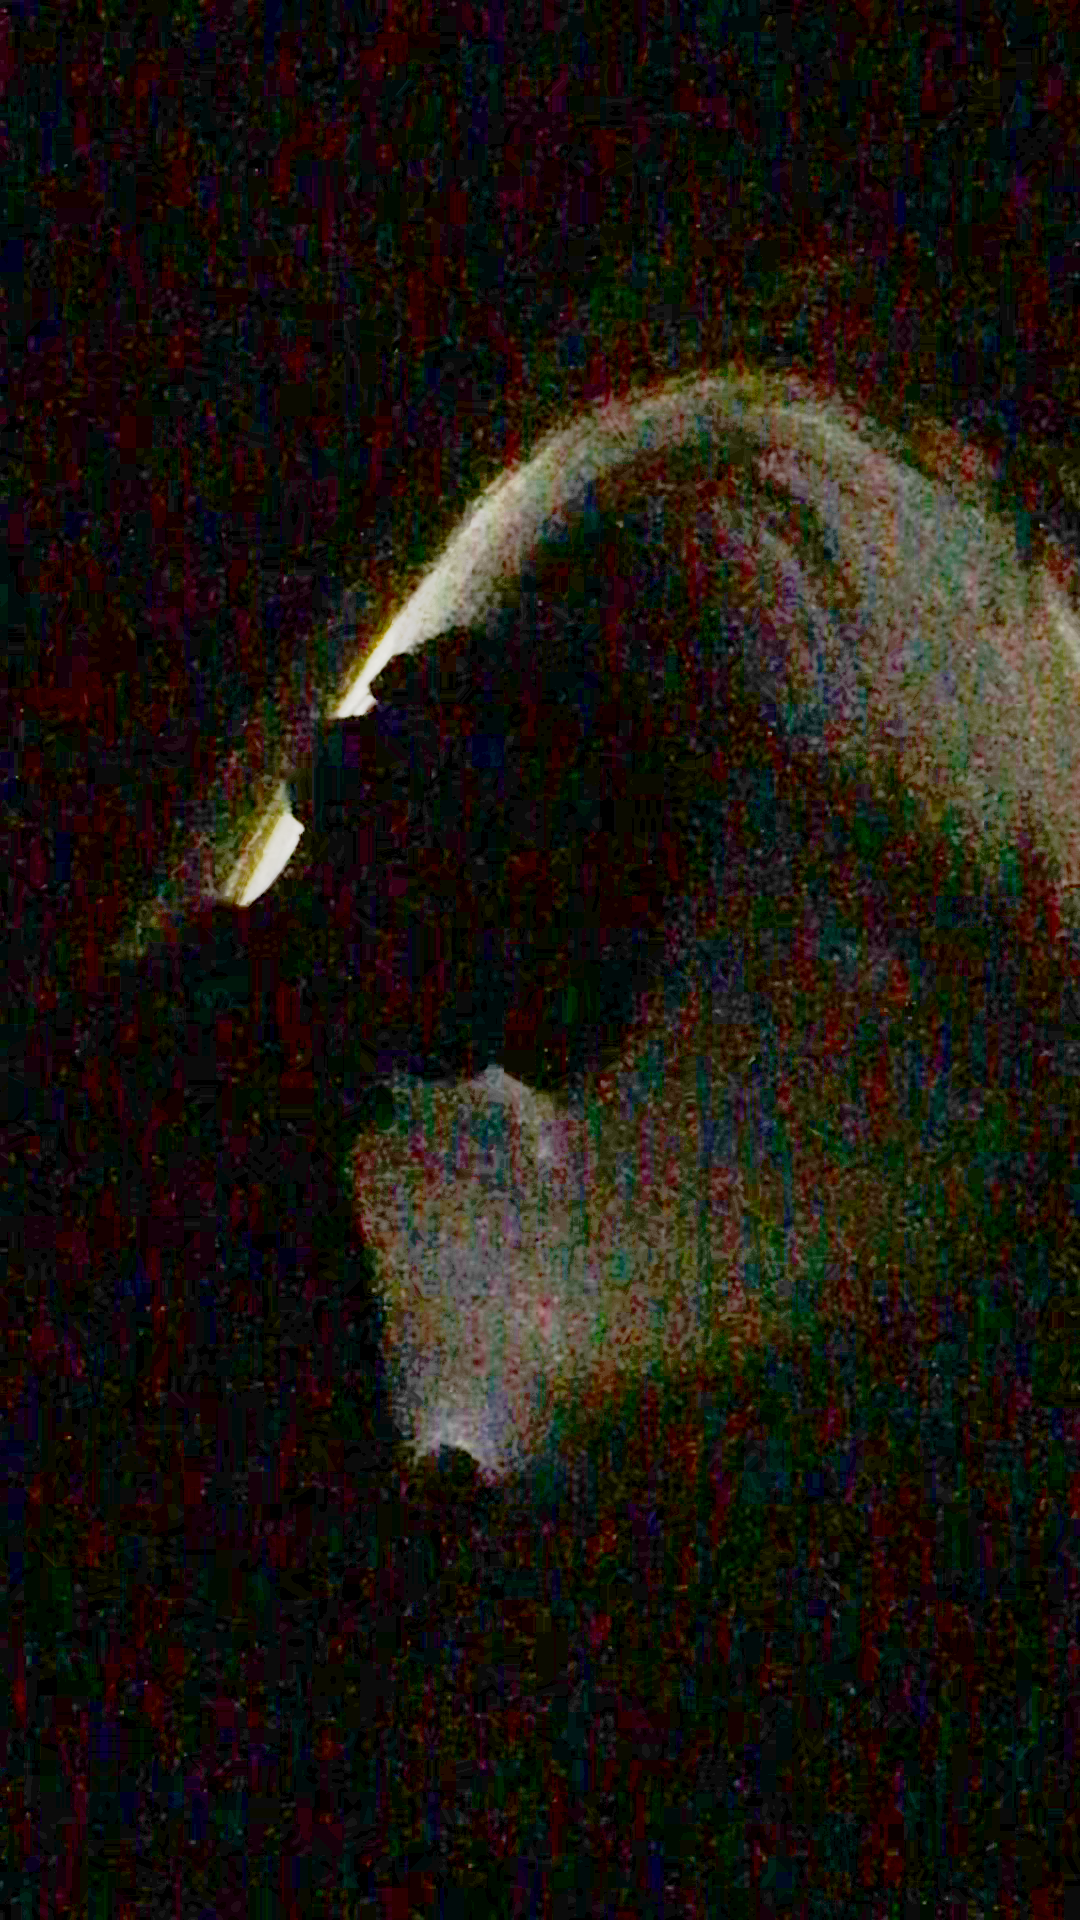 A low-fi photo of a person silhouette in a tunnel holding a light